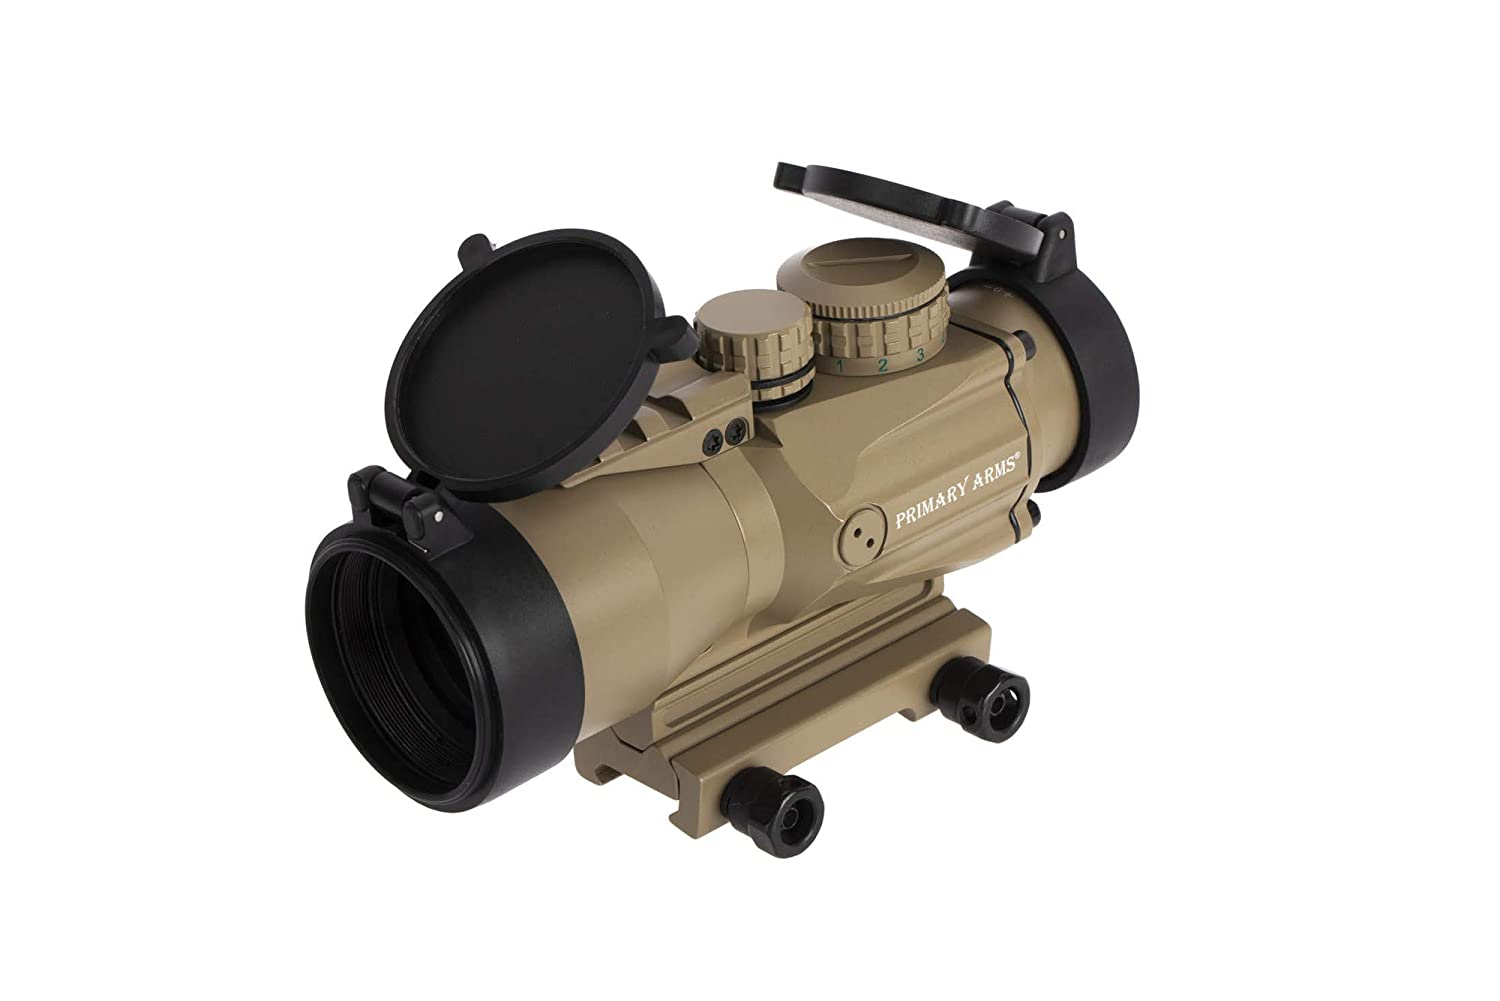 Primary Arms SLxP5 Compact 5×36 Gen II Prism Scope – ACSS-5.56 5.45 .308 – FDE